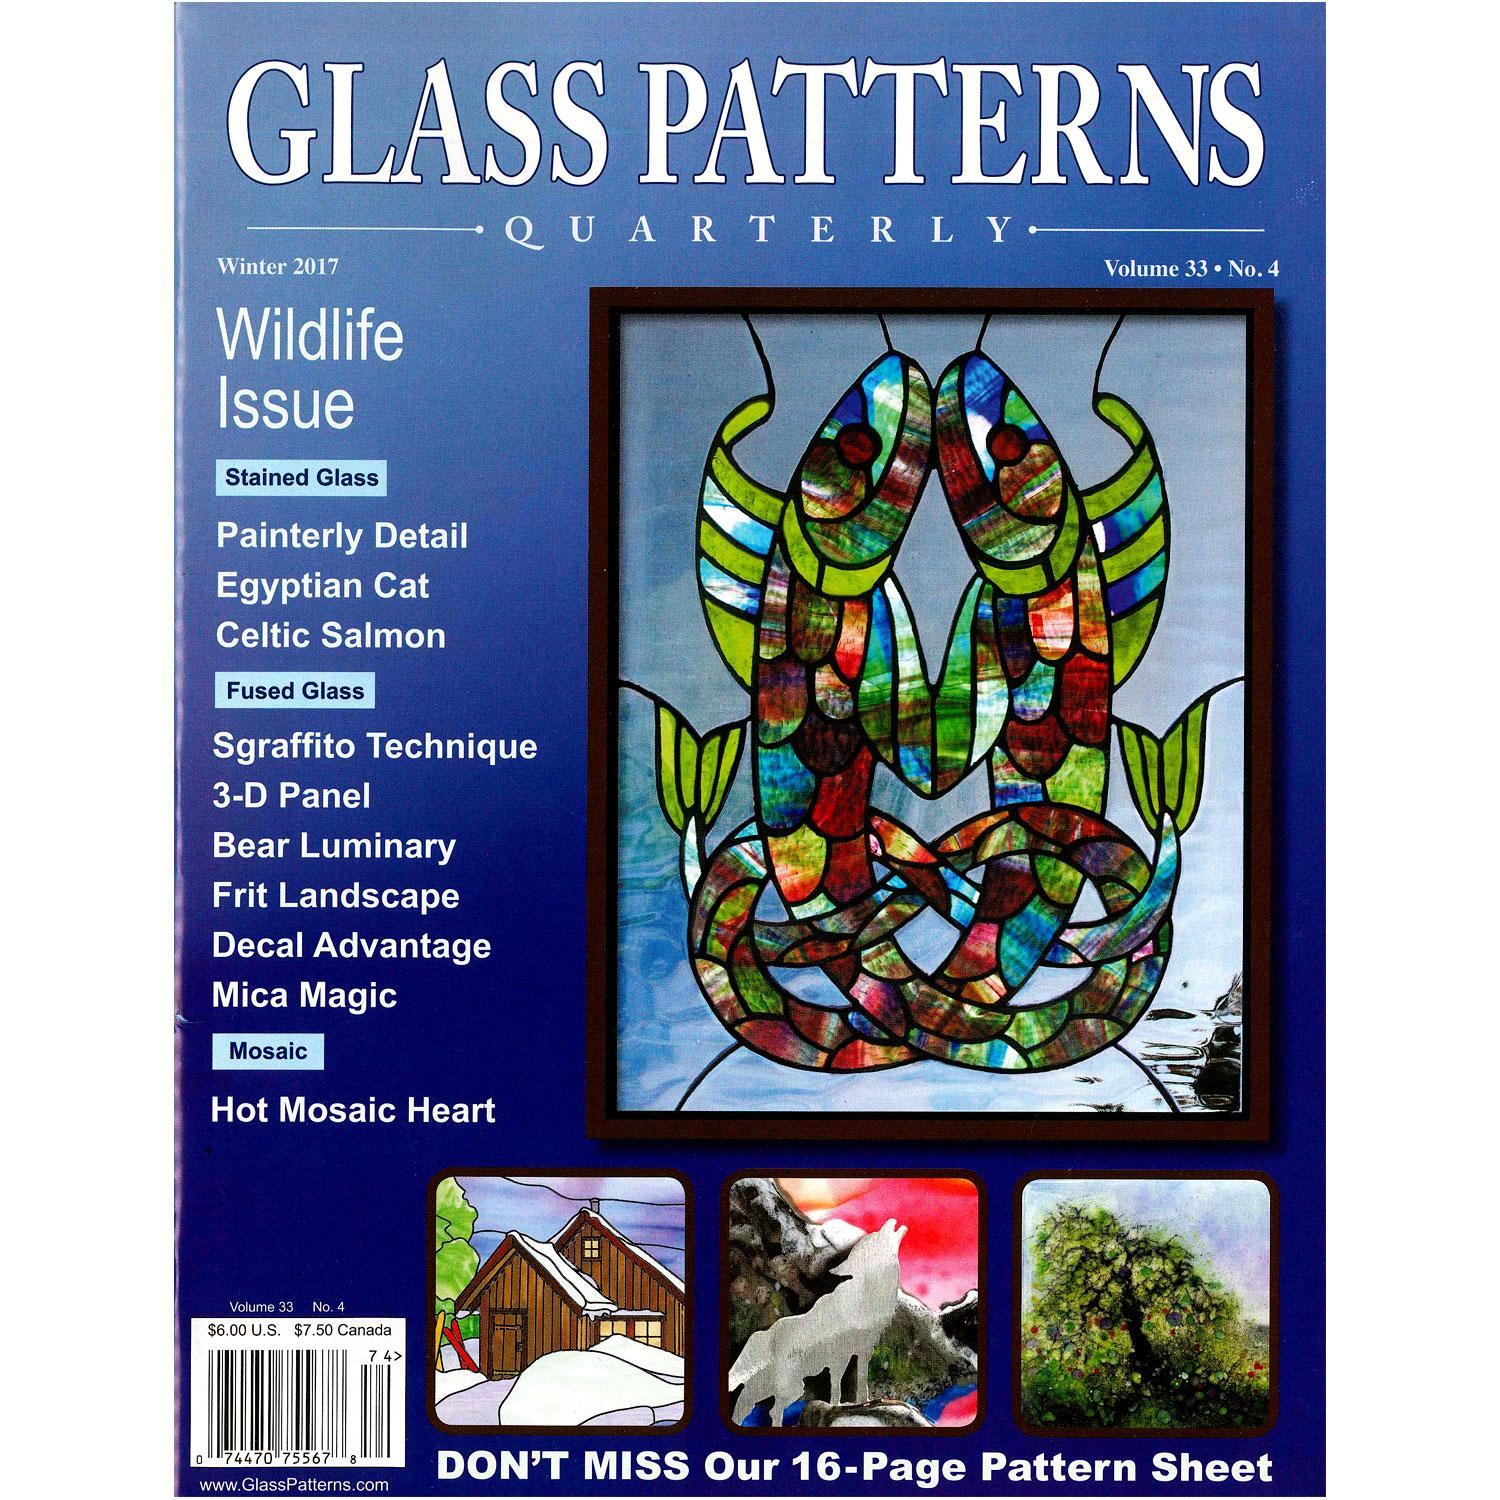 Glass Patterns Quarterly Winter 2018